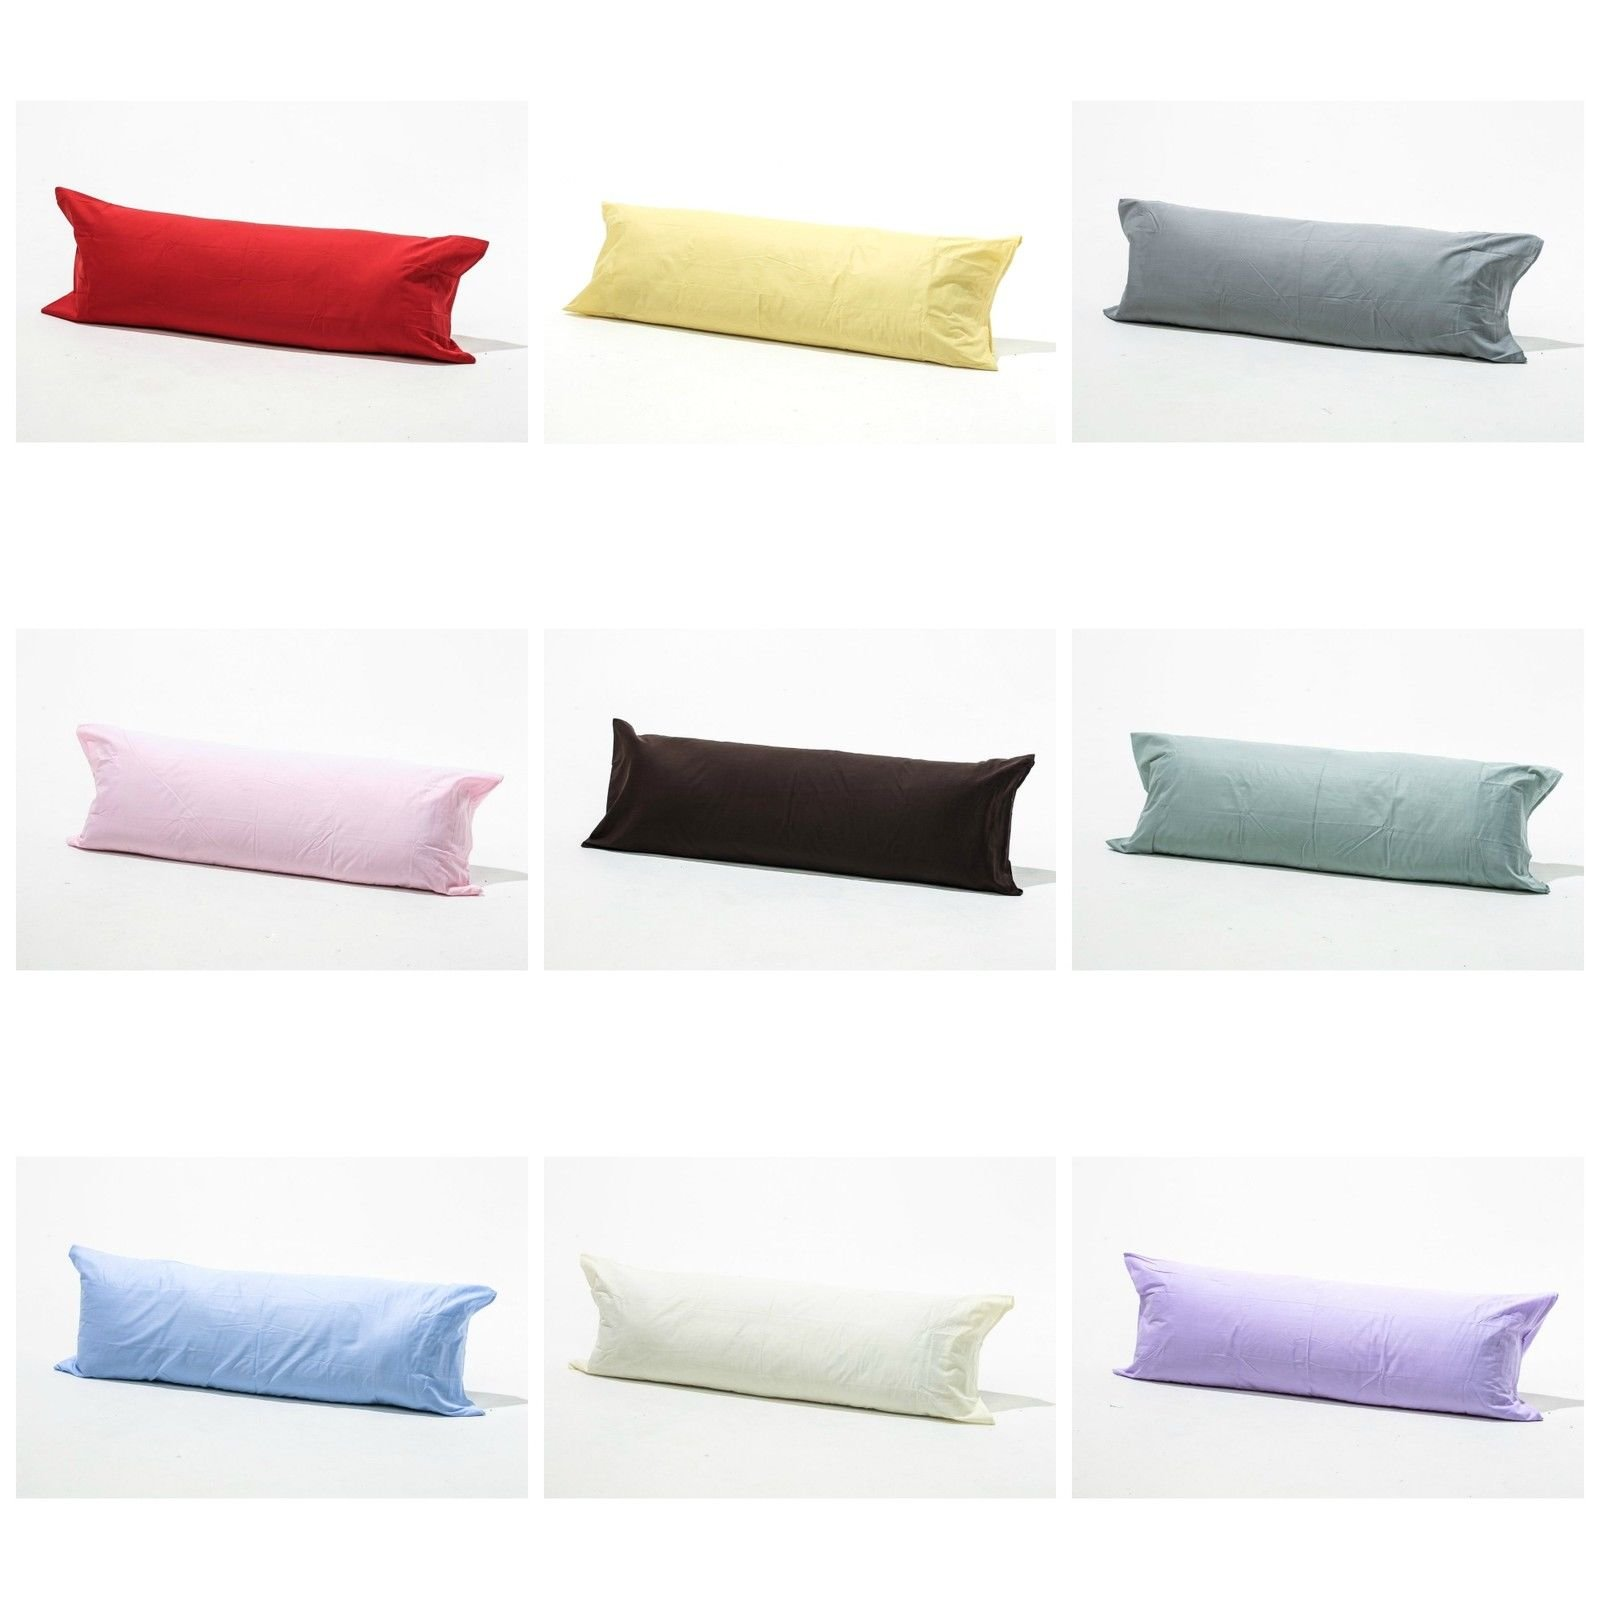 Luxury Orthopaedic 3ft Cotton Blend Bolster Body Pillow Long Support Made in the UK SINGLE Bed Hollowfibre Filled